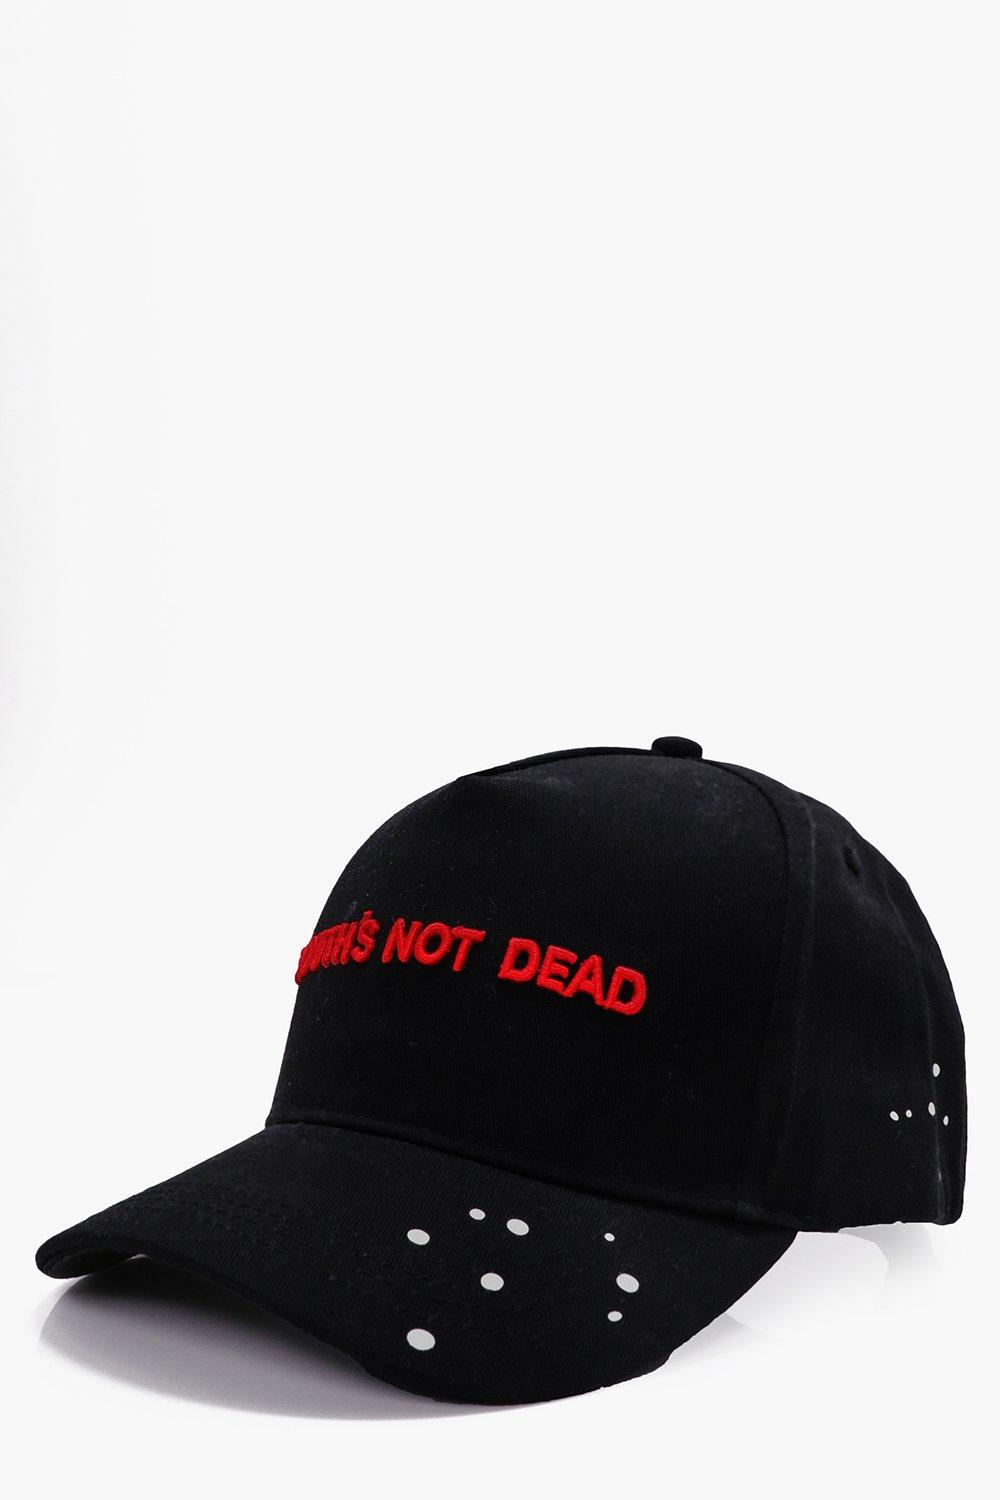 Peak Cap With Red Embroidery - black - Black Peak